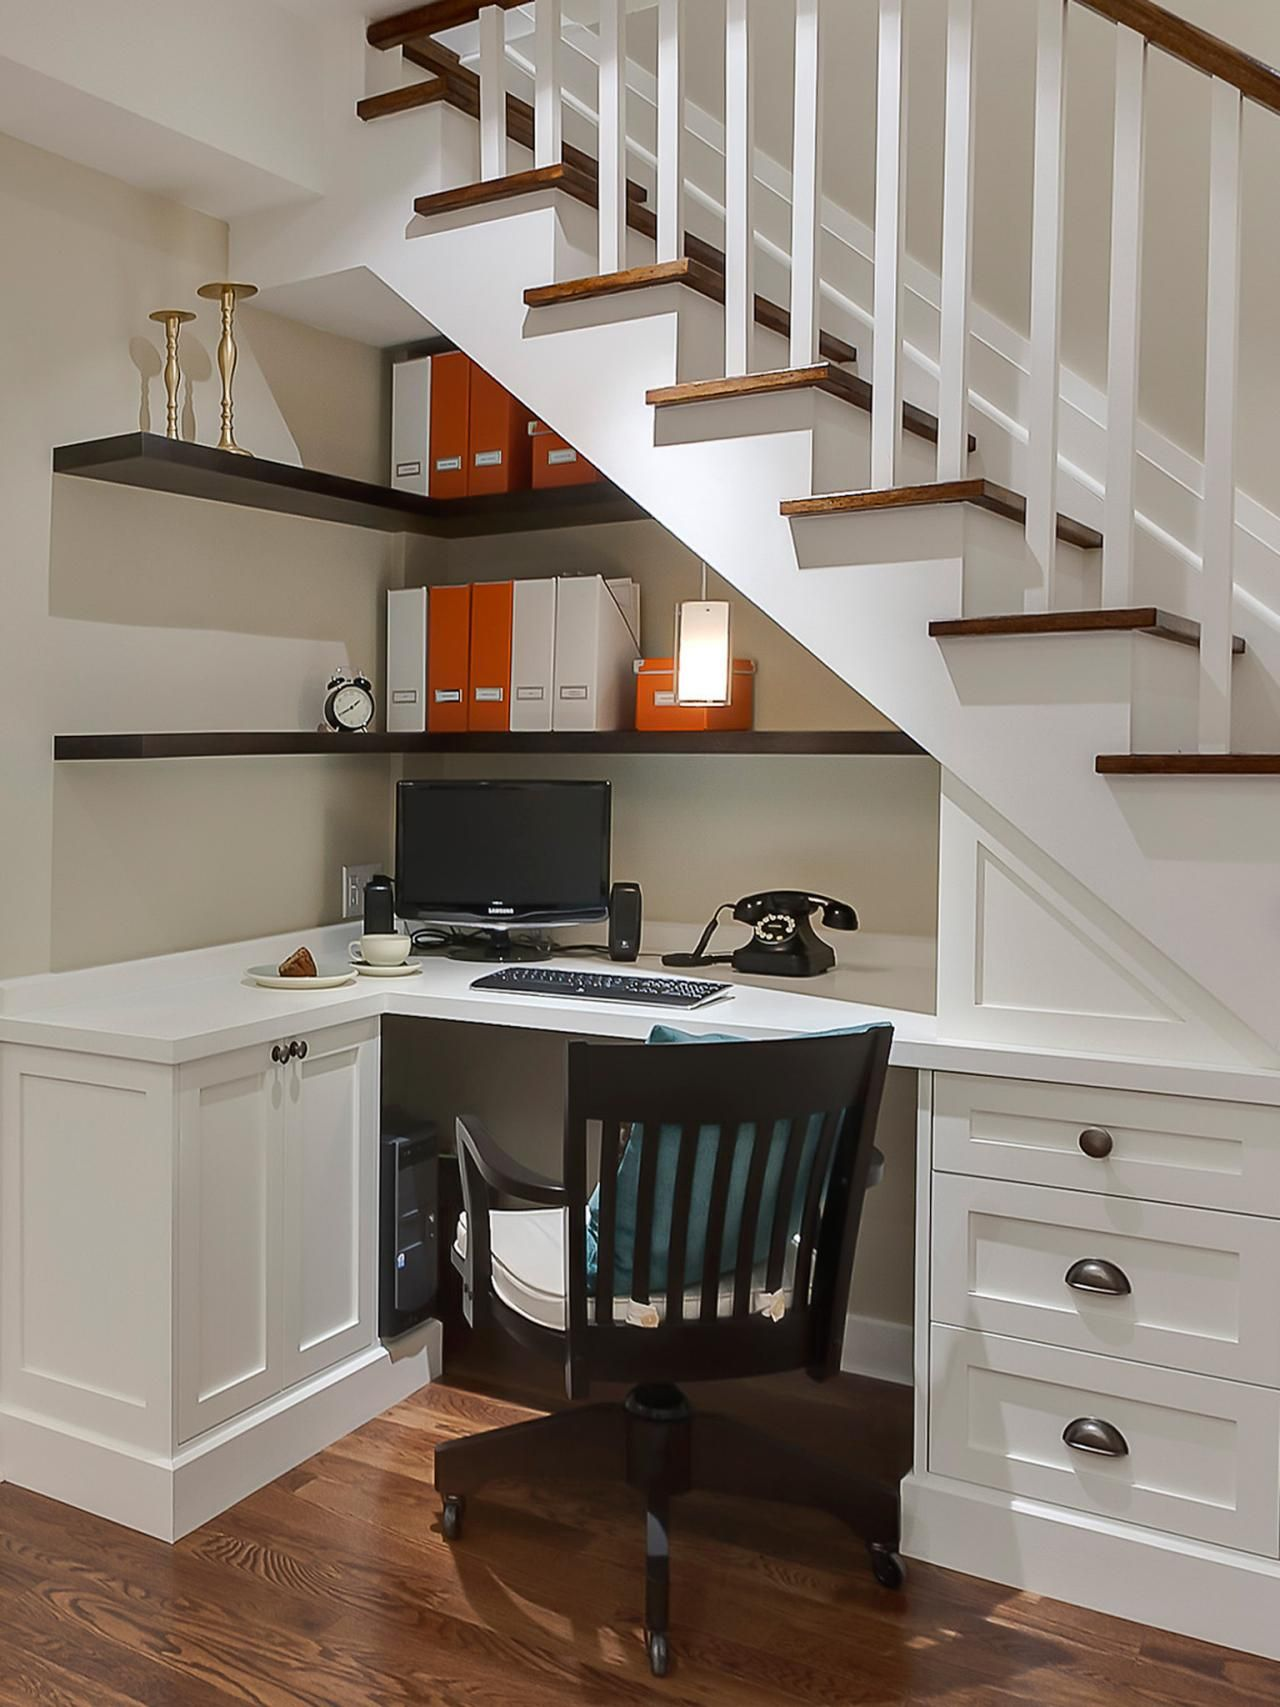 11 Organized Home Offices To Inspire You. Basement Home OfficeSmall ...